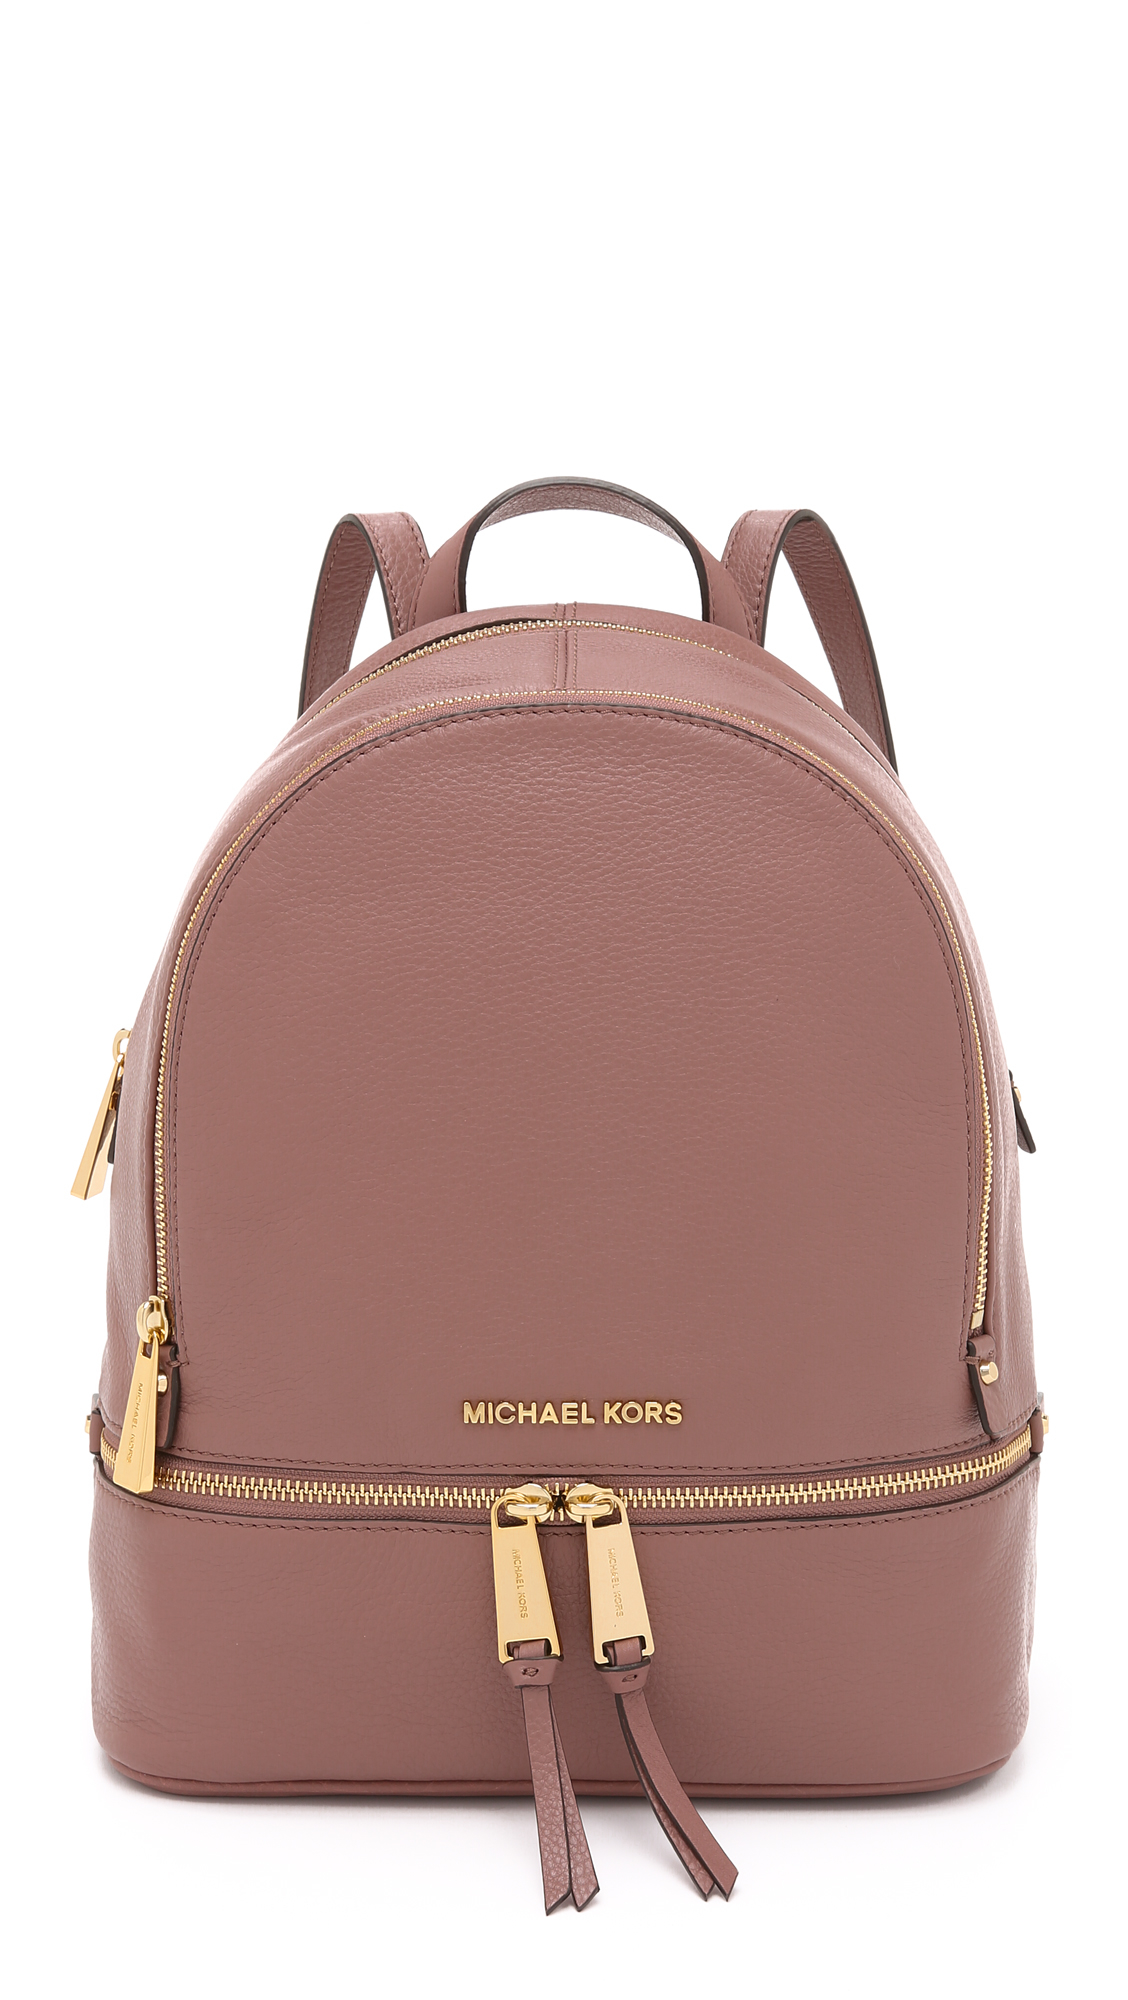 9881cbac976f Michael Kors Purse Backpack | Stanford Center for Opportunity Policy ...